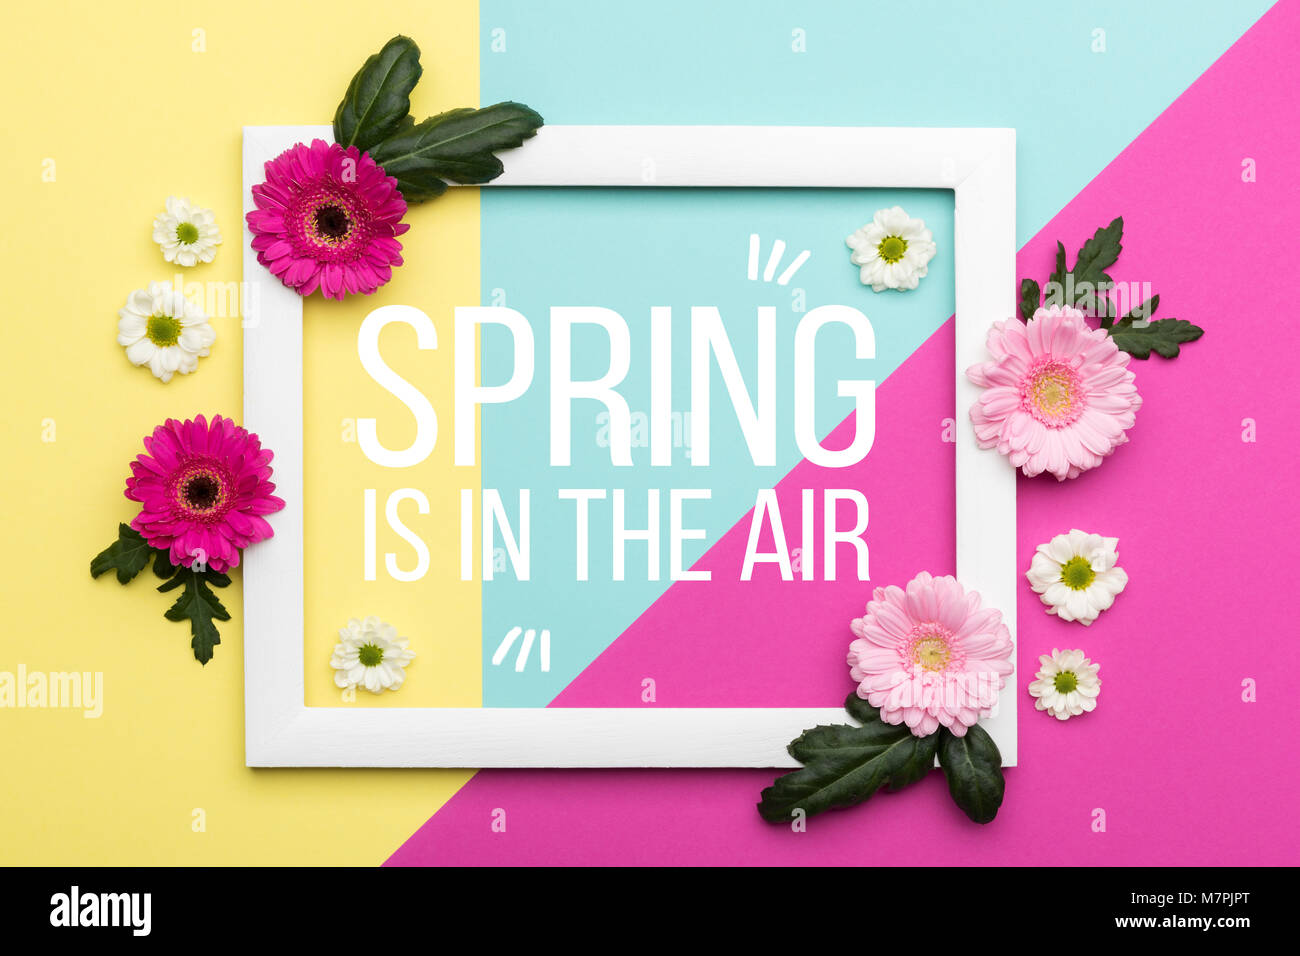 Welcome card stock photos welcome card stock images alamy welcome spring themed pastel coloured background spring time floral flat lay minimalism greeting card kristyandbryce Choice Image